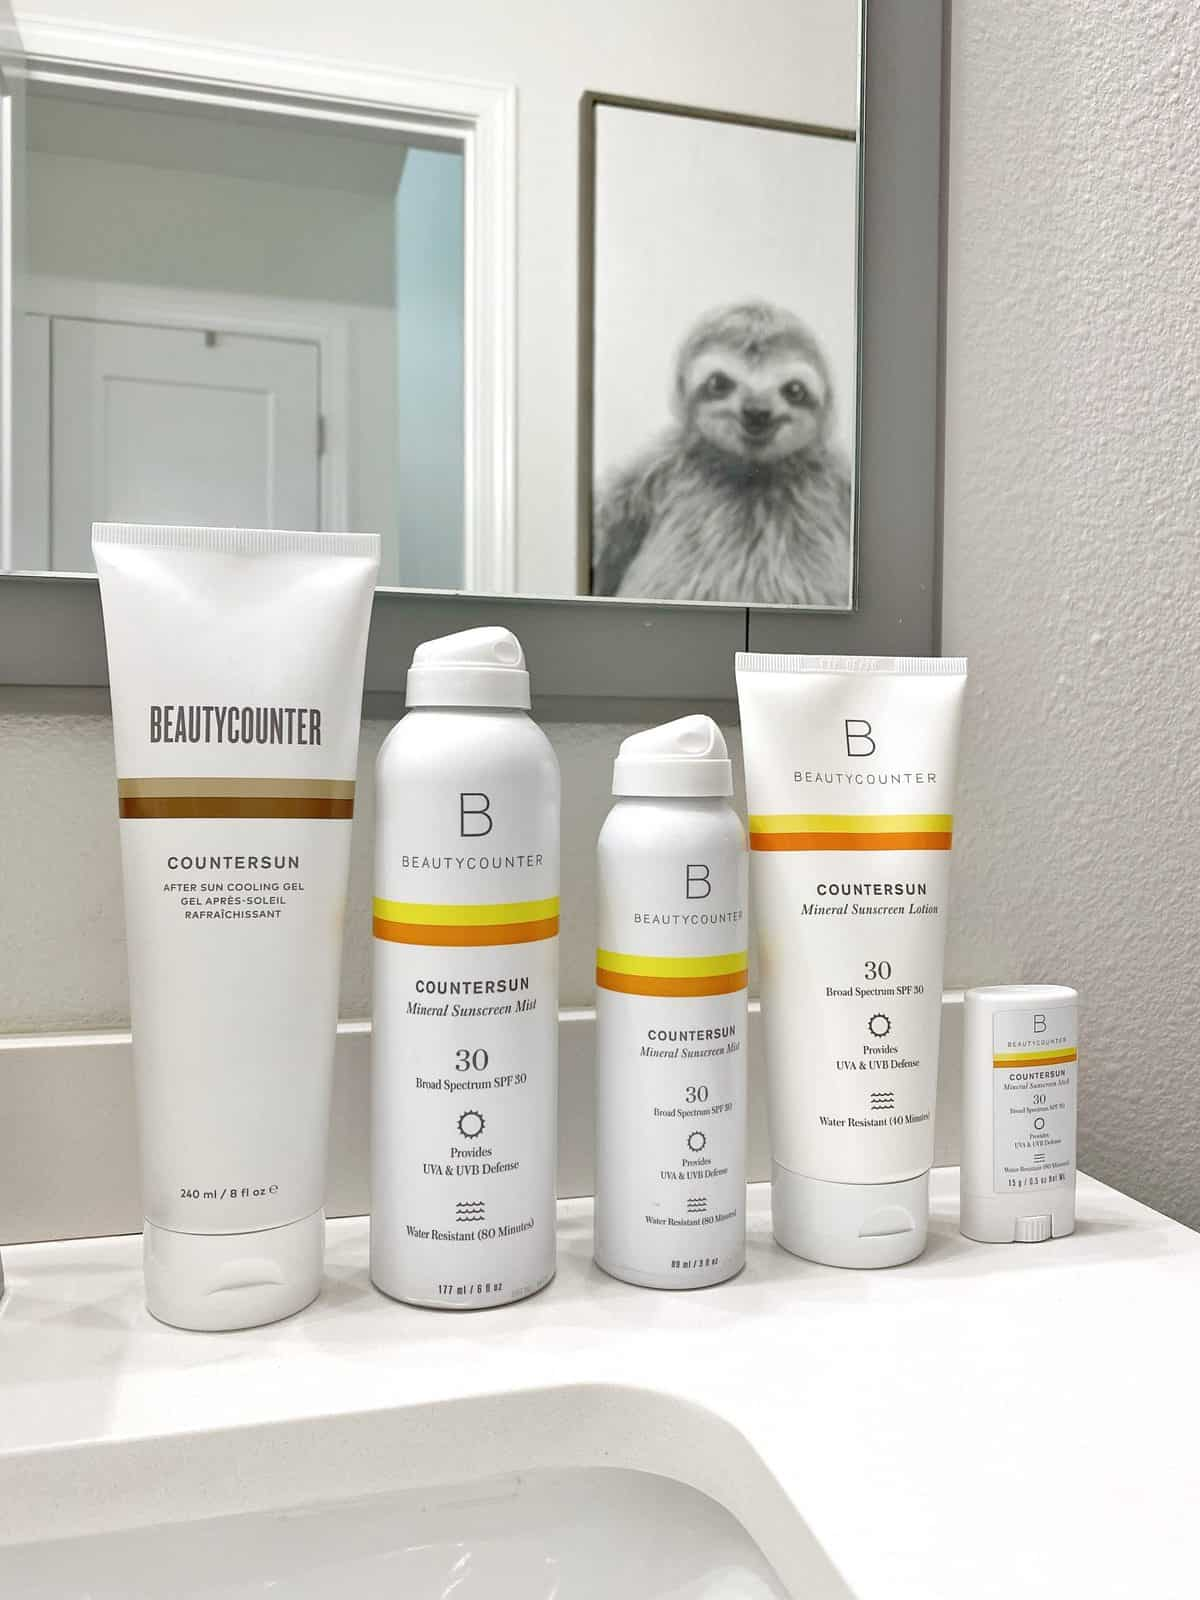 Beautycounter sunscreen lined up on a bathroom vanity: Countersun After Sun Cooling Gel, Countersun Mineral Sunscreen Mist SPF 30, Countersun Mineral Sunscreen Lotion SPF 30, and Countersun Mineral Sunscreen Stick SPF 30. Above the bathroom vanity is a mirror that reflects back a framed photo of a sloth.